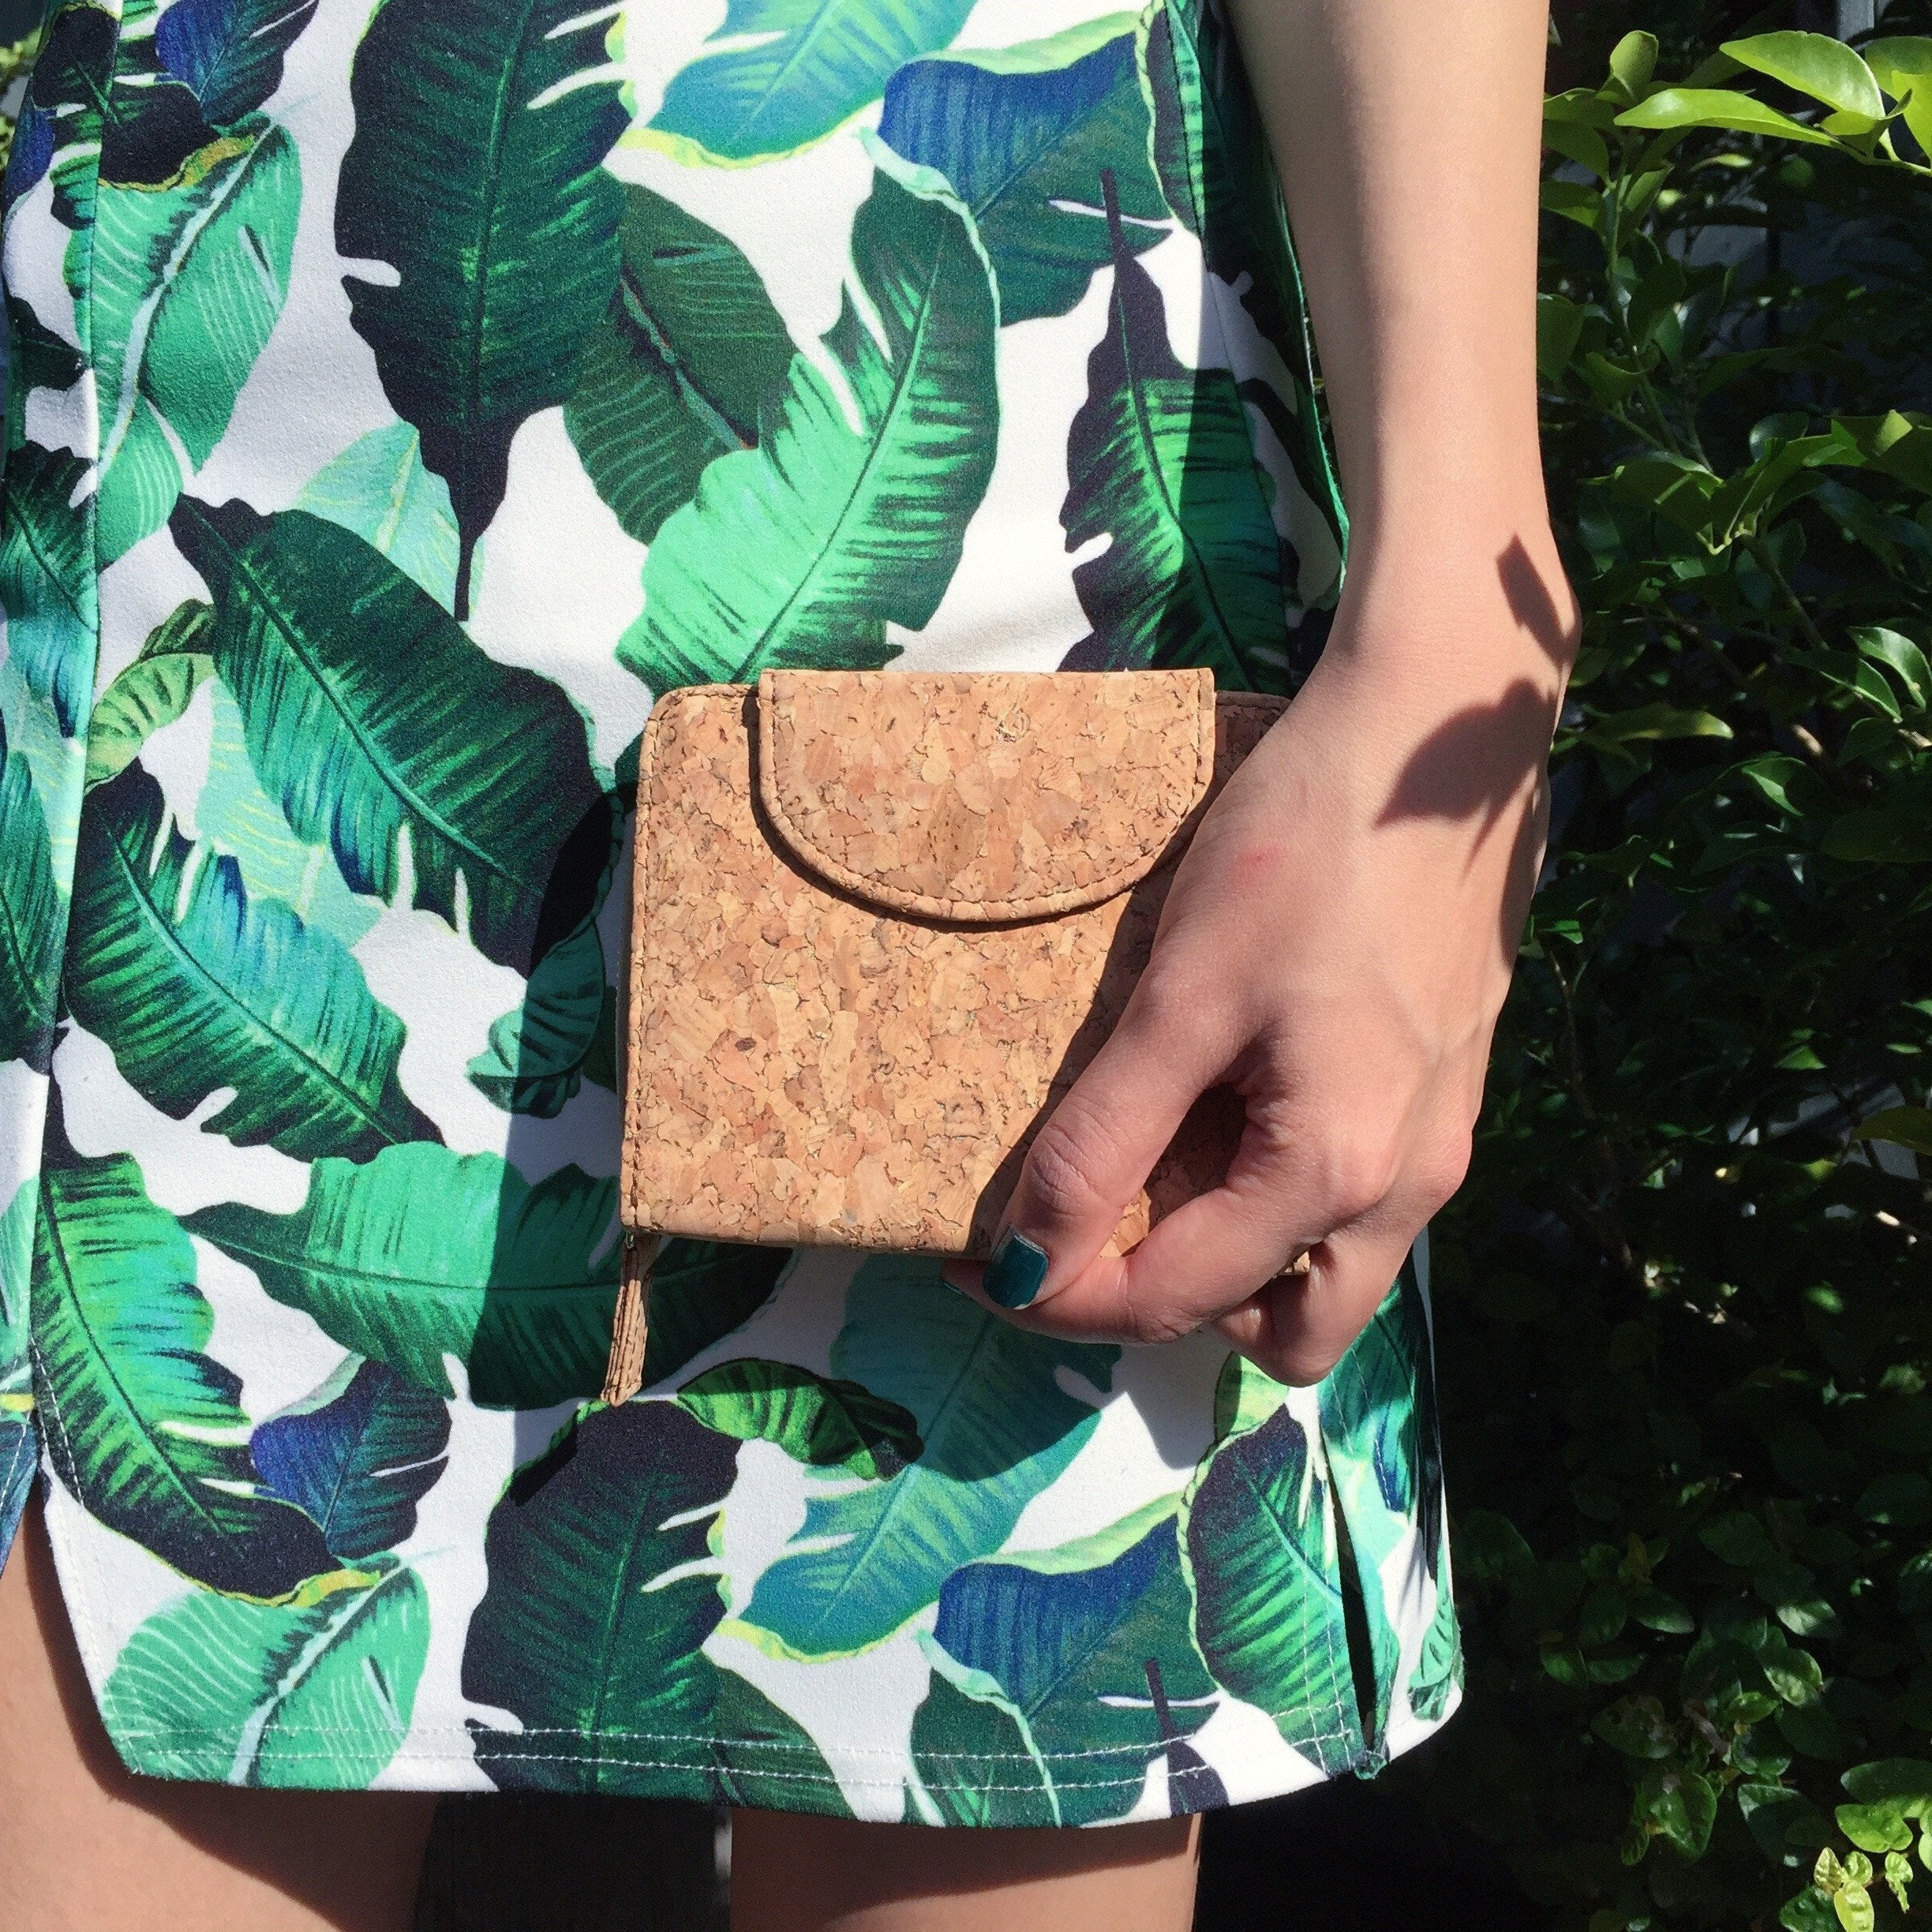 Plain Classic Fiona Cork Wallet Purse Natural Cruelty Free Ethical Vegan Recycled